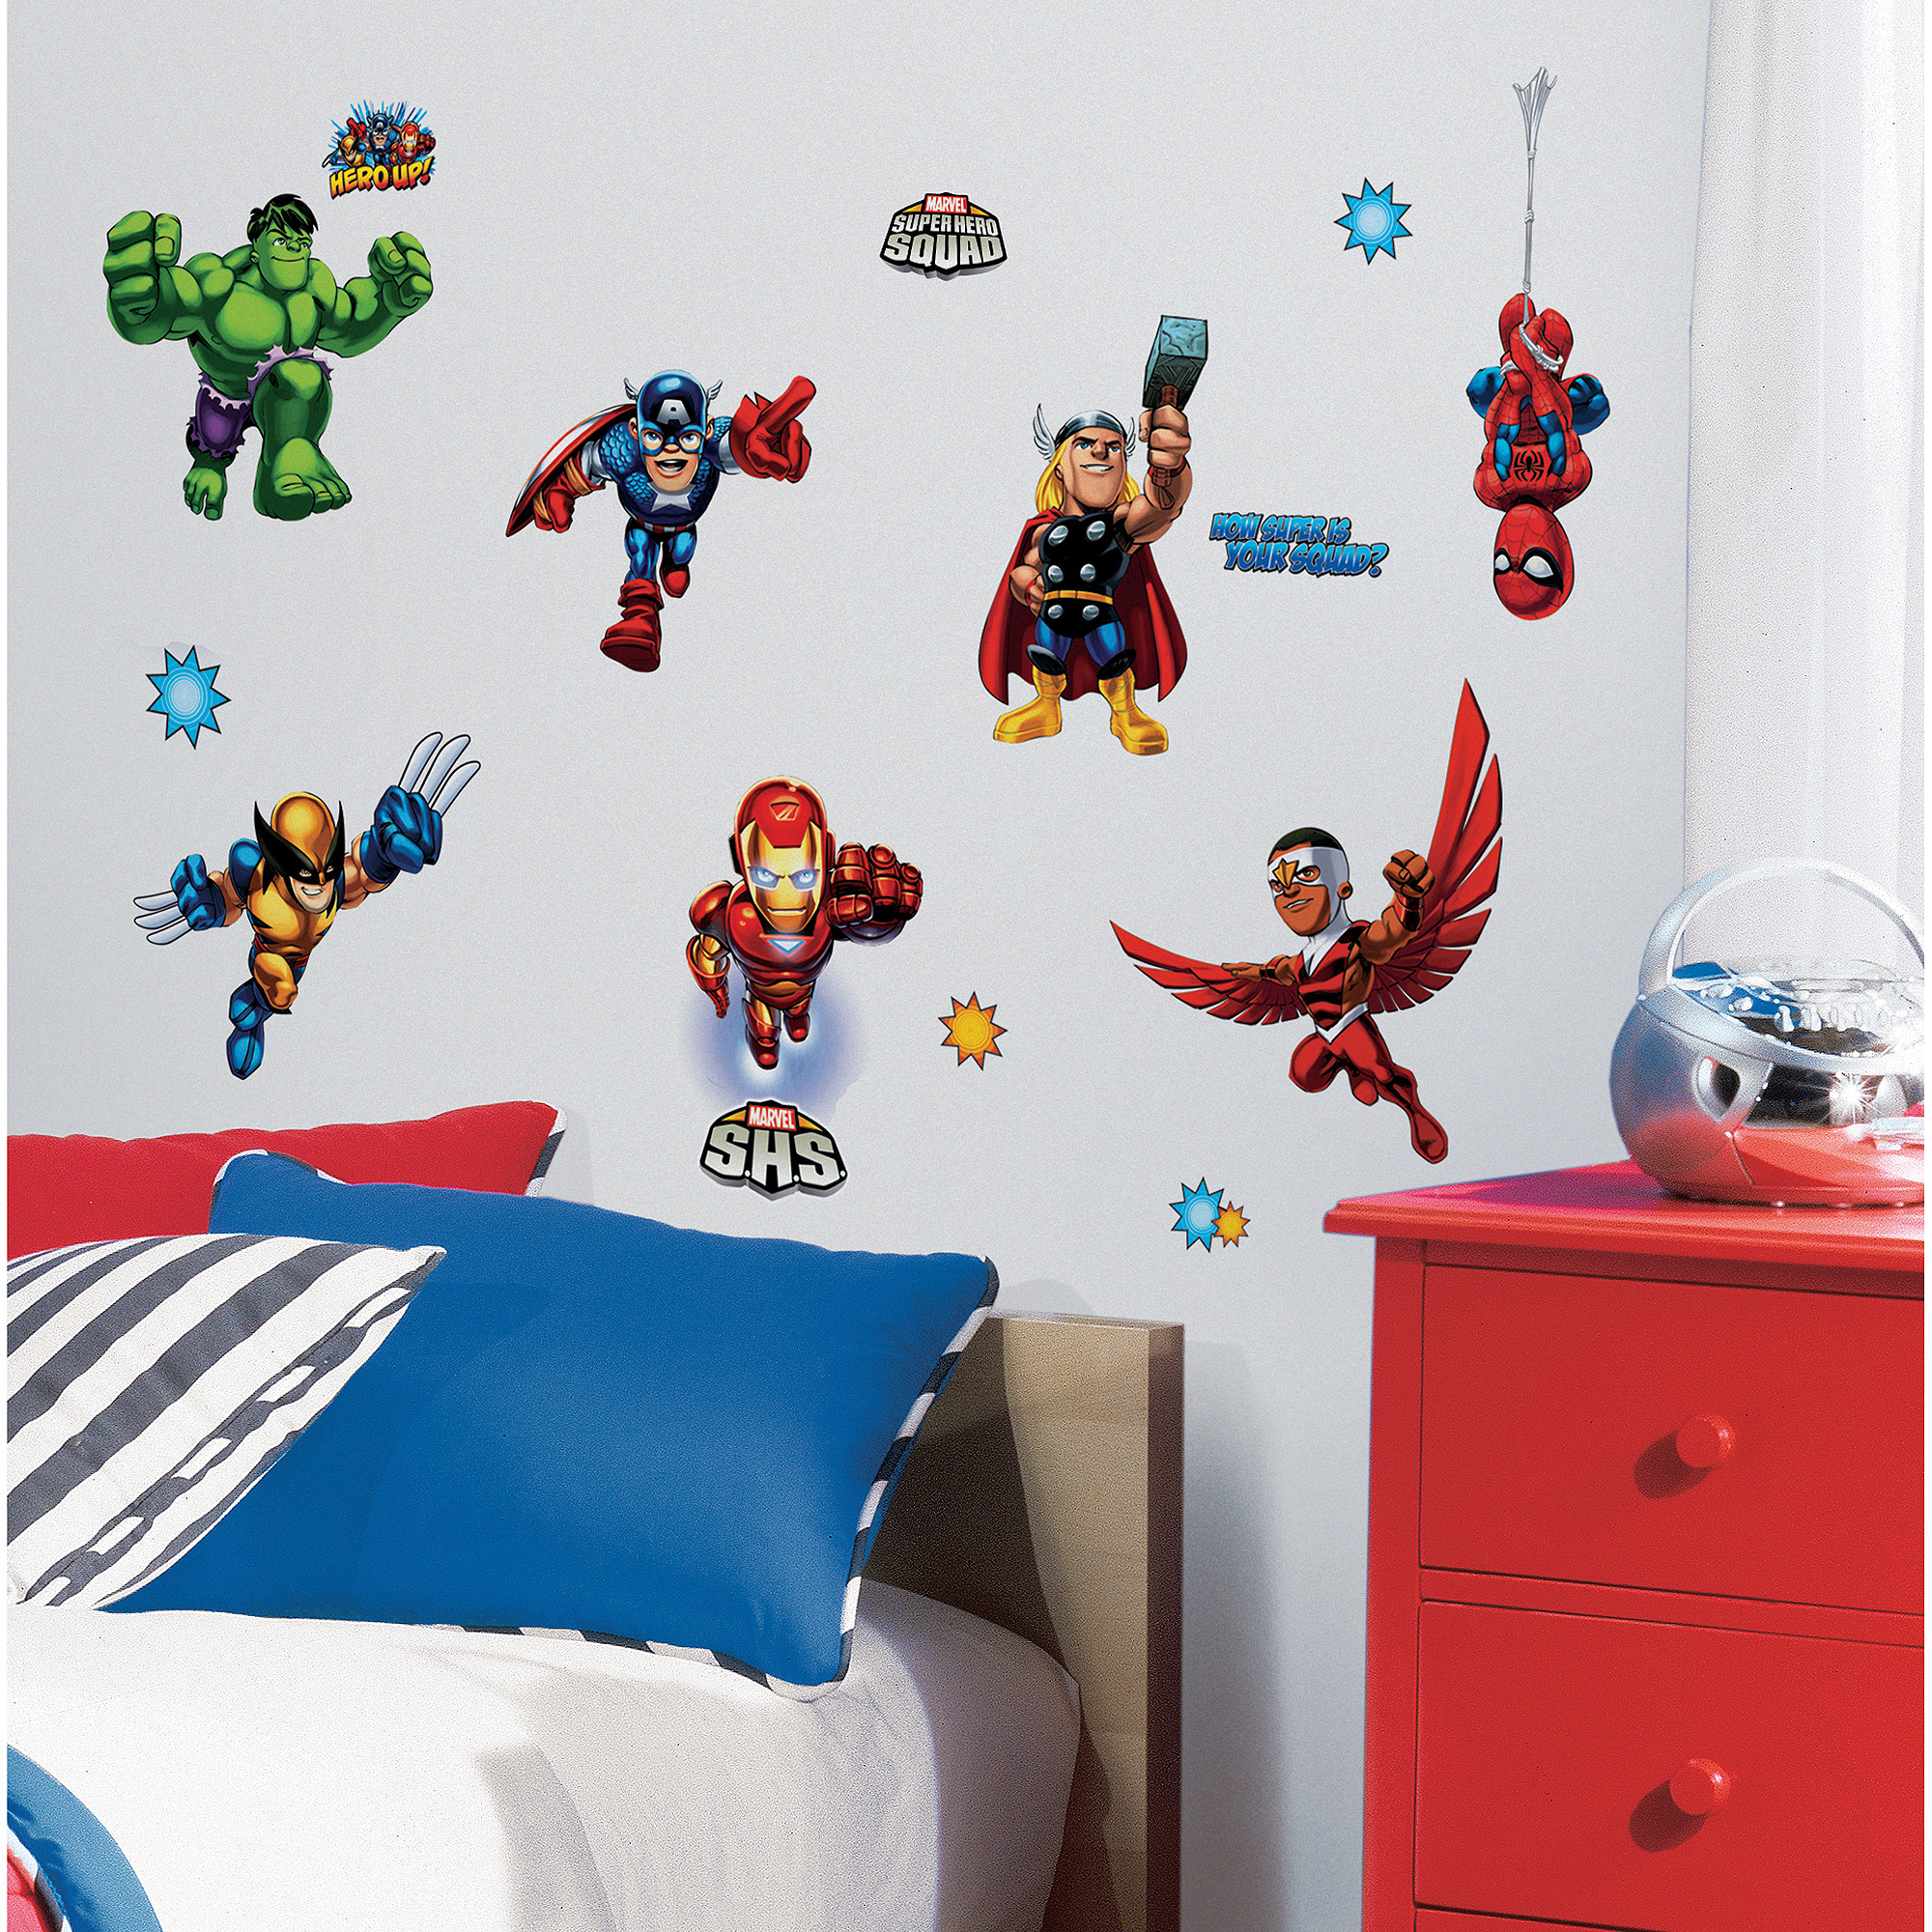 Superhero wall decals roommates marvel super hero squad peel stick wall decals amipublicfo Gallery